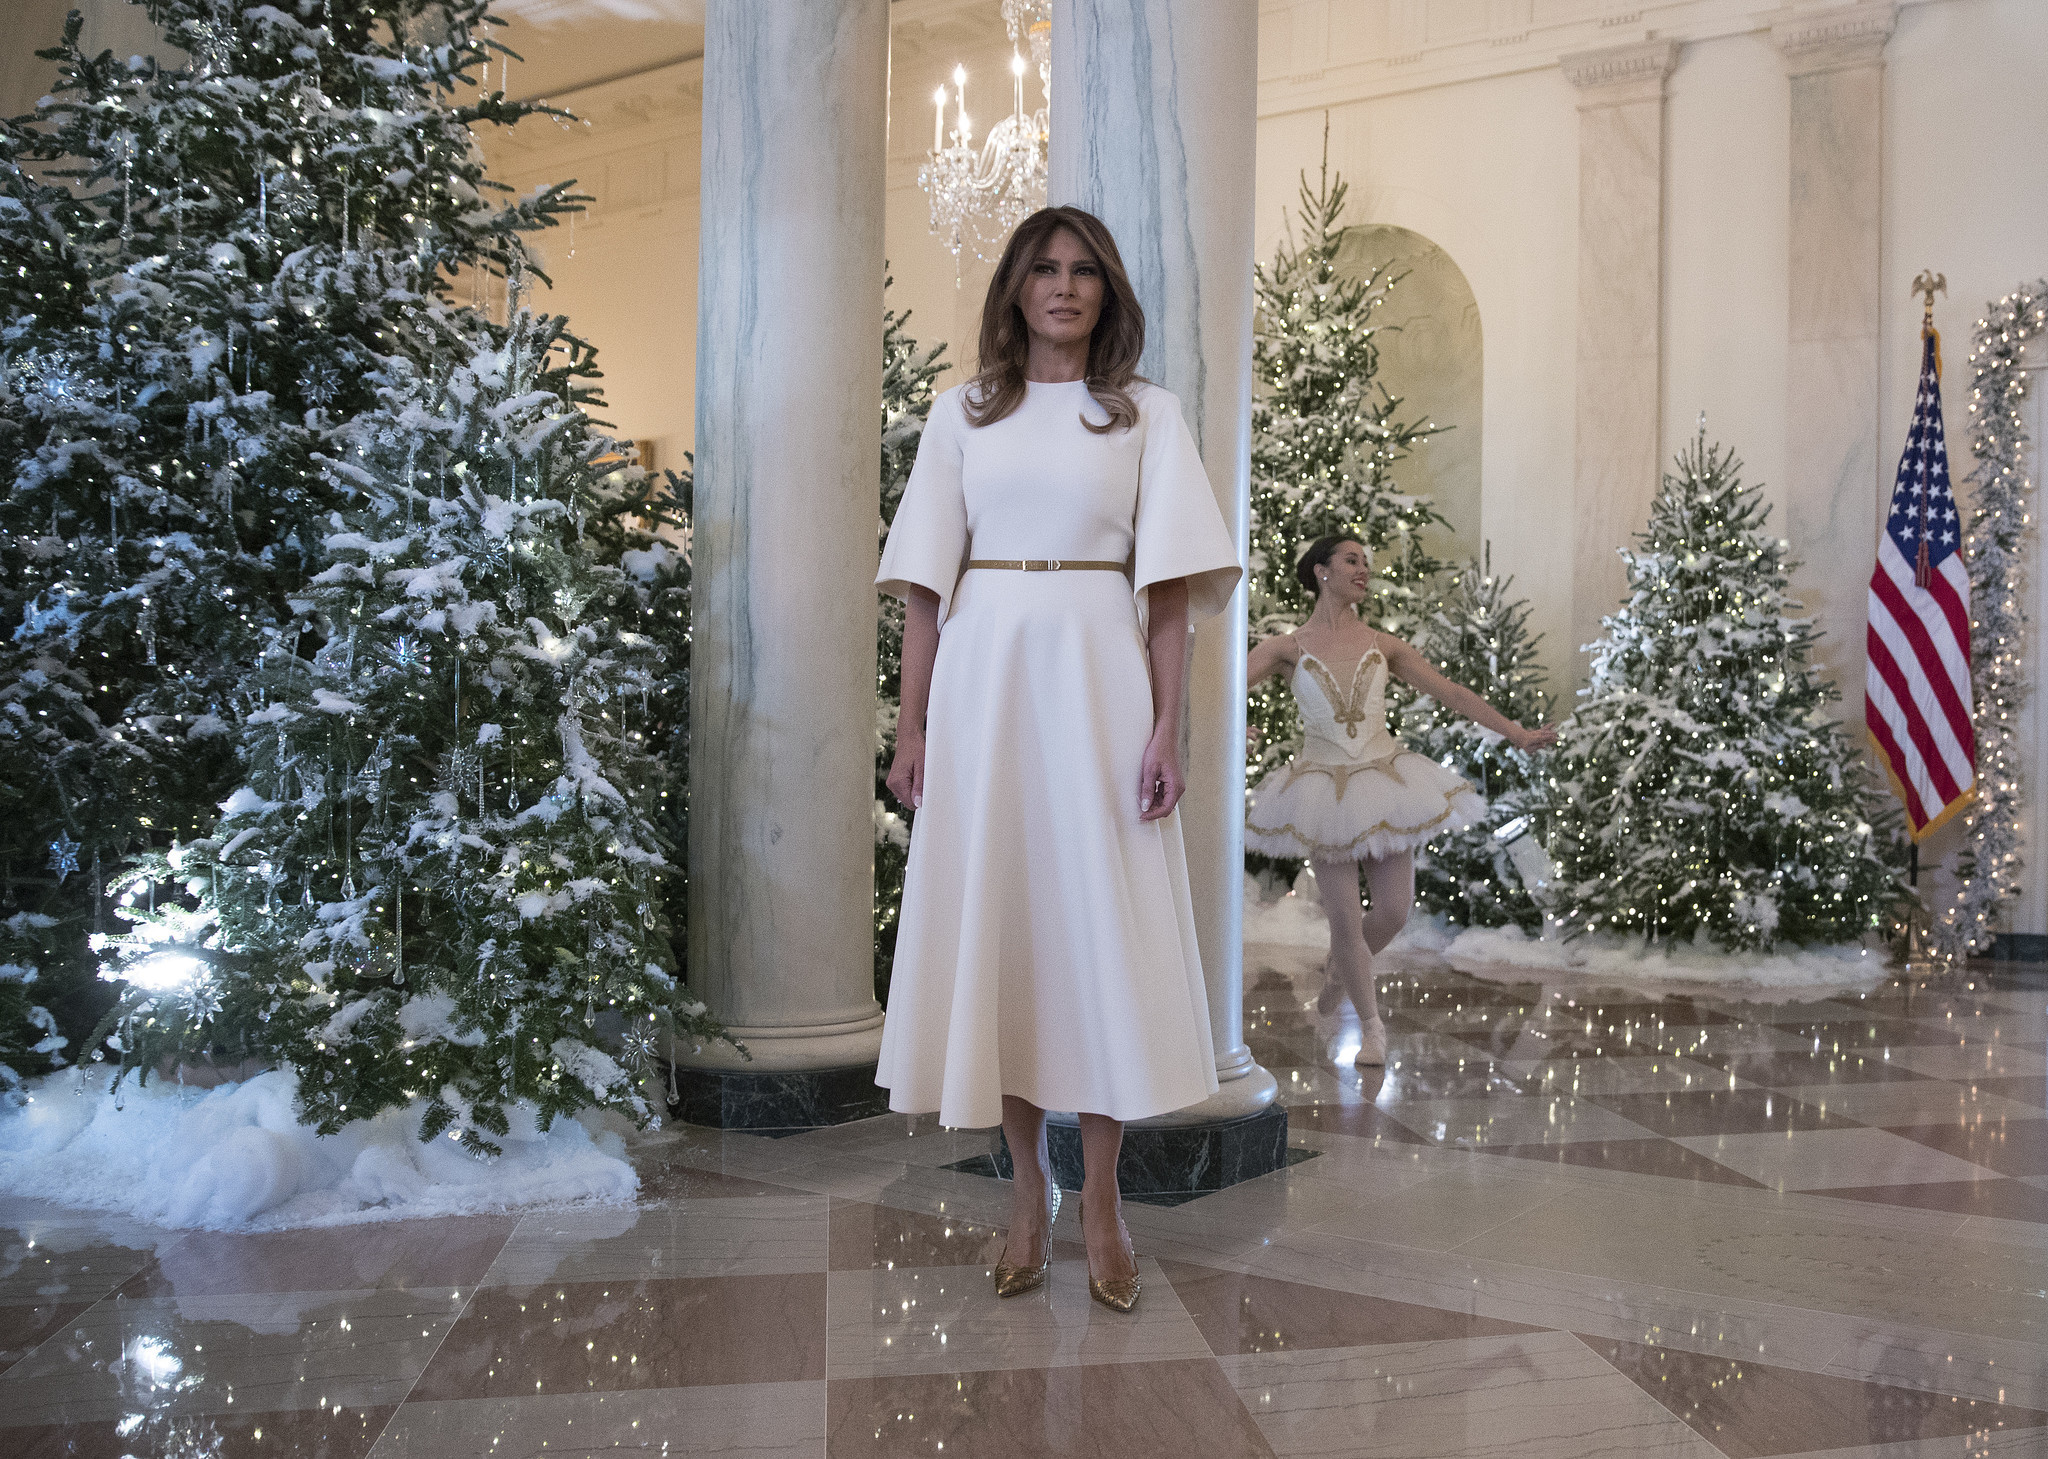 first lady melania trump goes with traditional christmas decor for white house orlando sentinel - Melania Trump Christmas Decorations